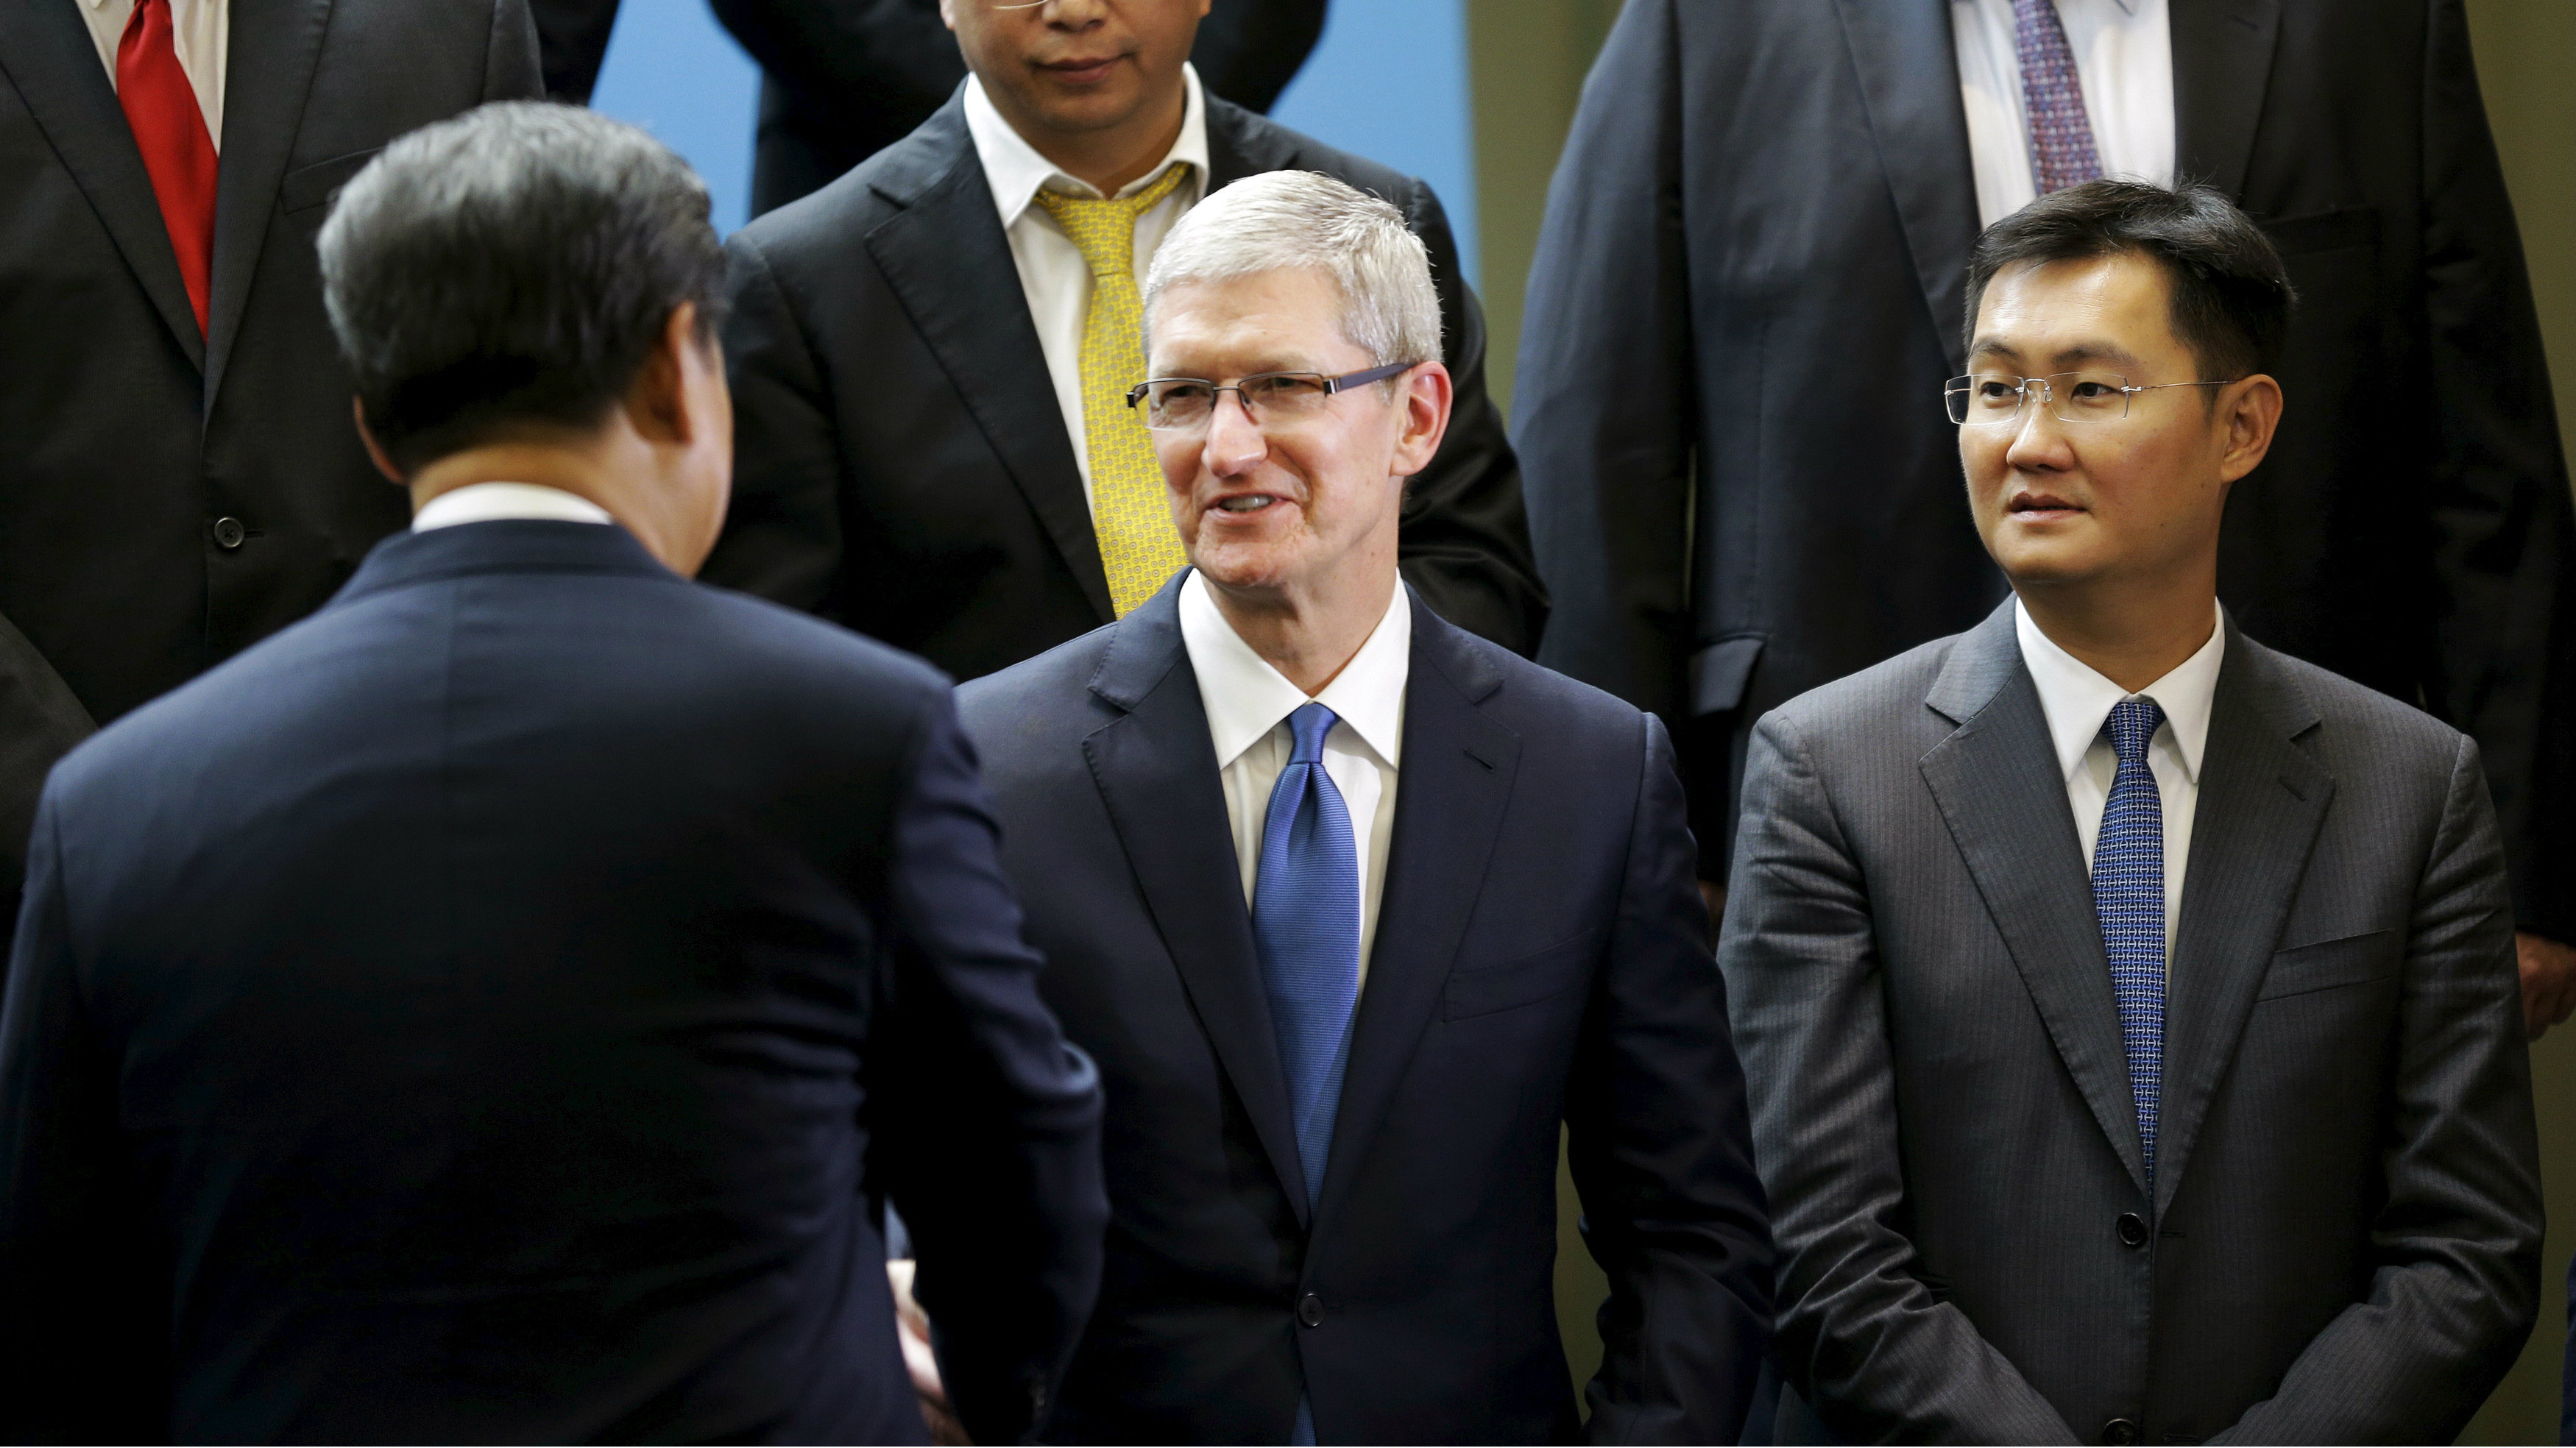 Chinese President Xi Jinping (L) shakes hands with Apple Inc. CEO Tim Cook (C), as Tencent CEO Pony Ma (R) looks on, during a gathering of CEOs and other executives at Microsoft's main campus